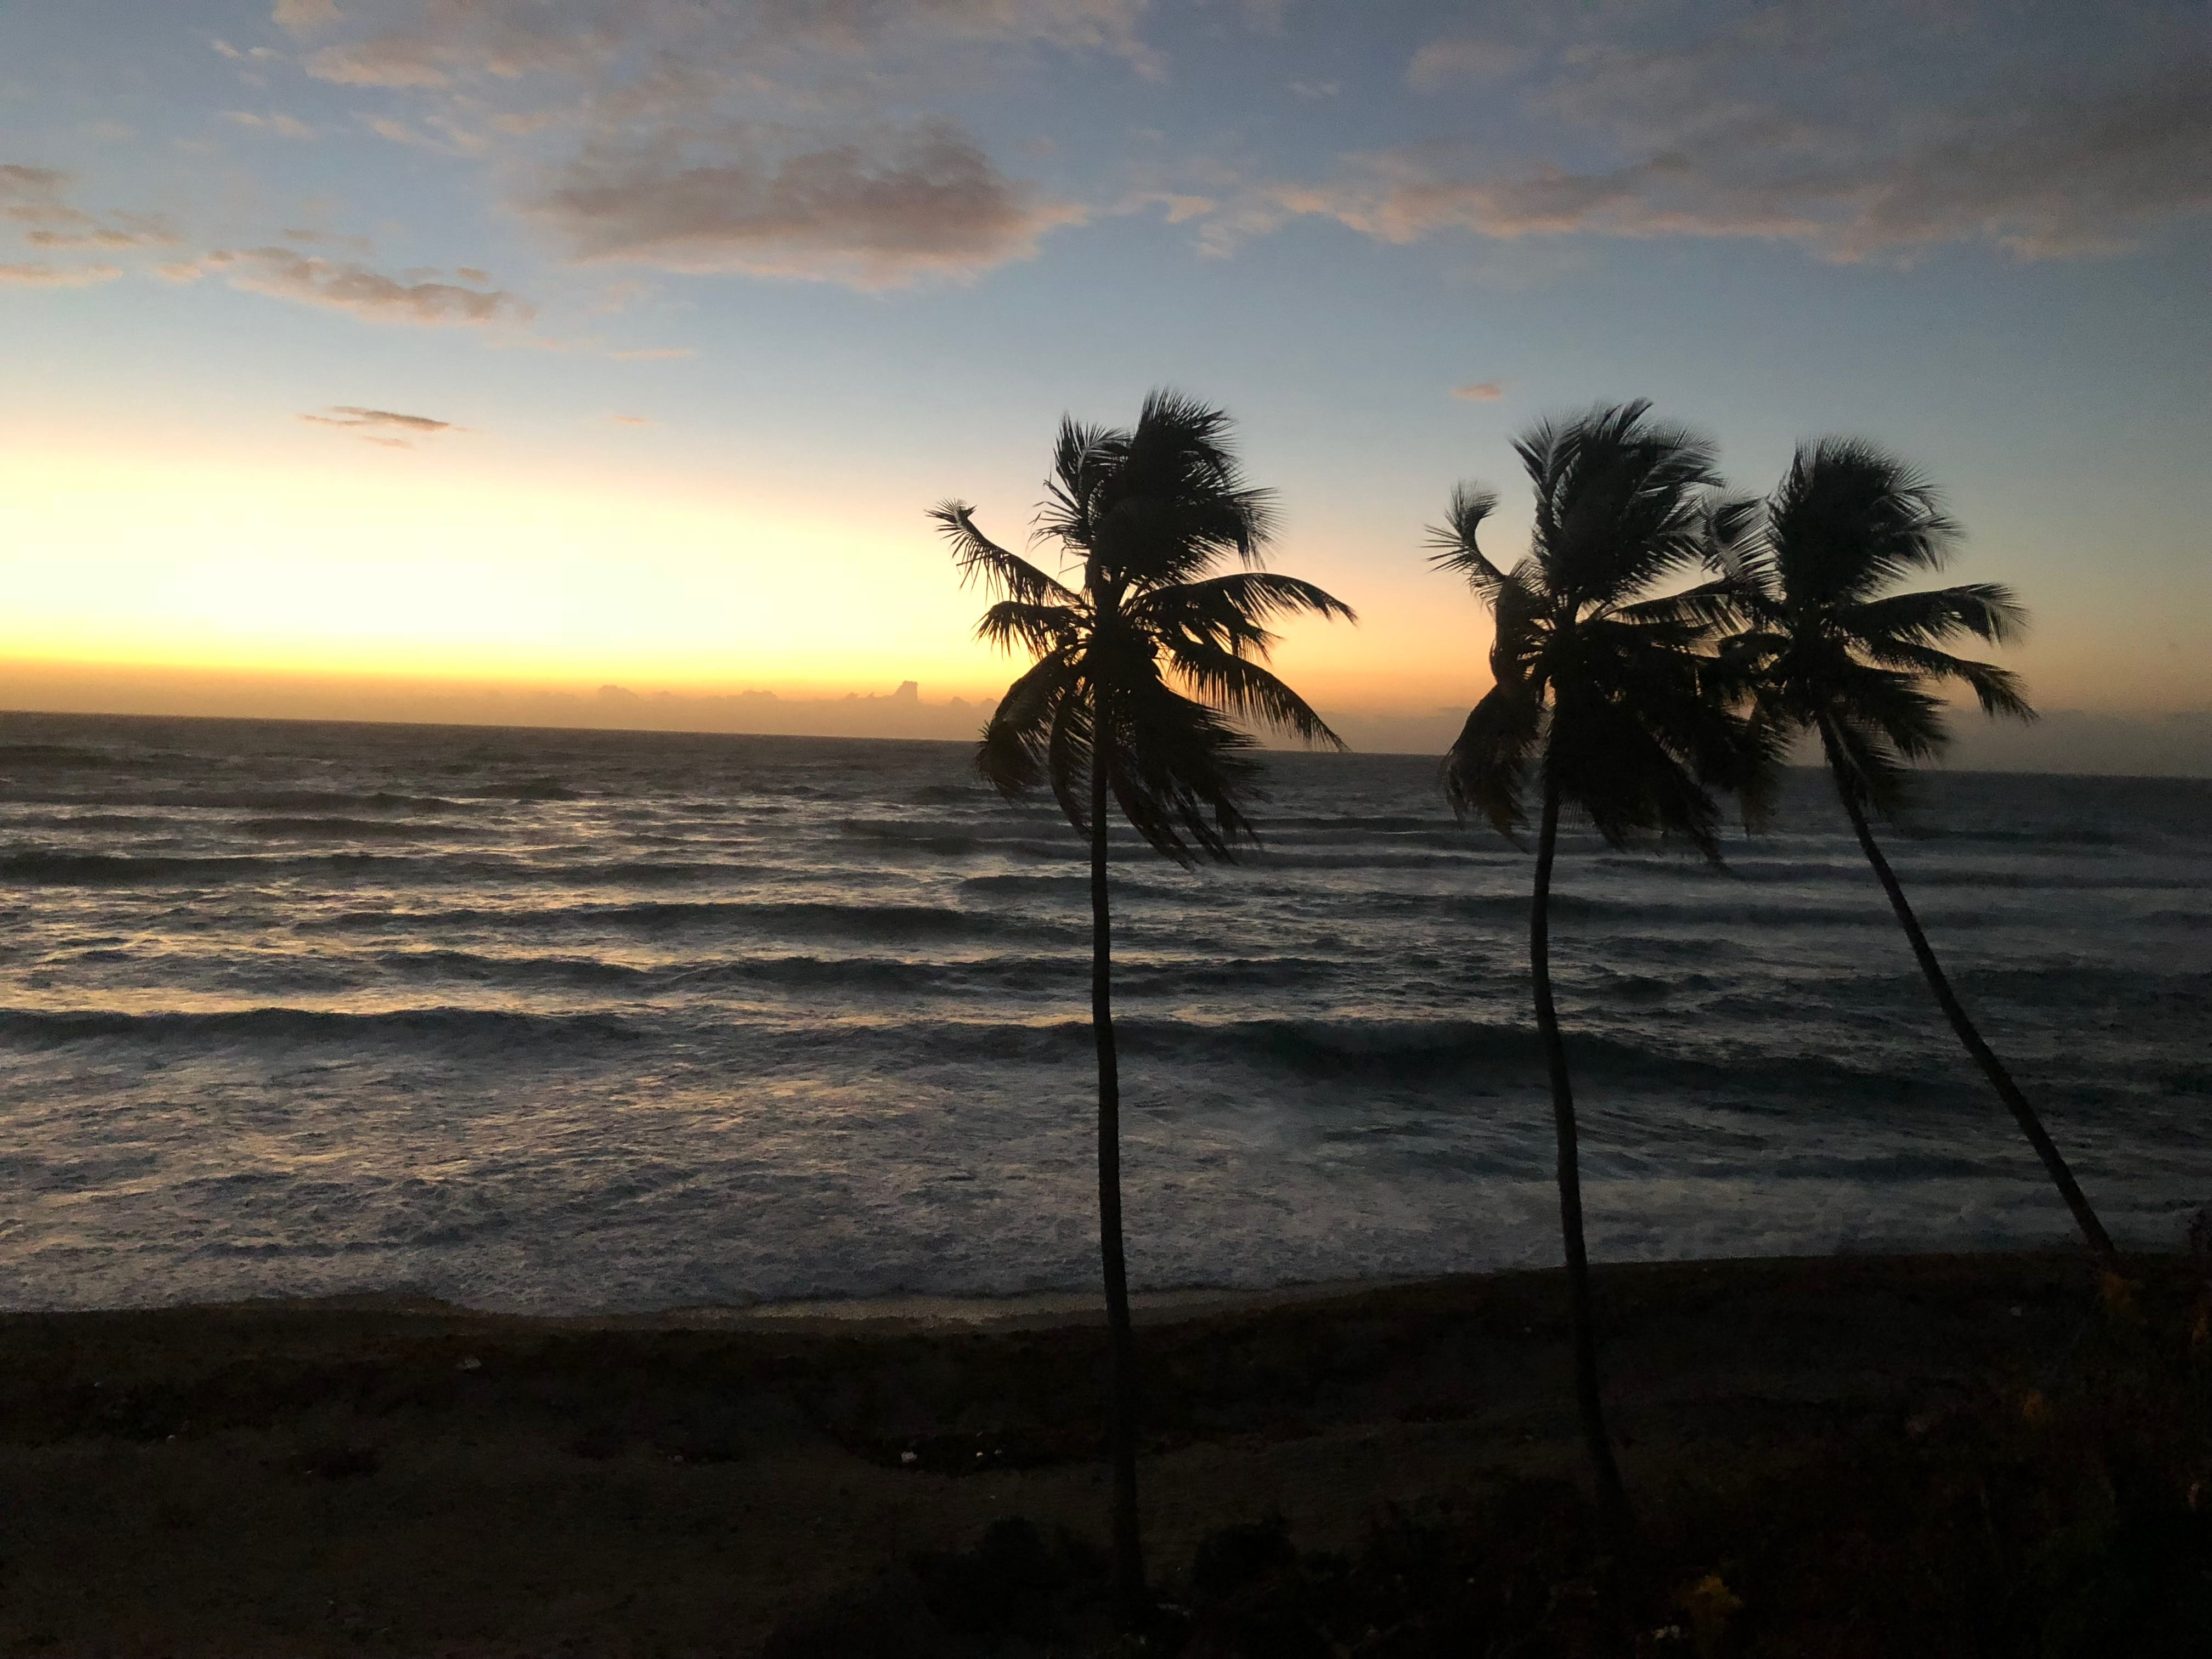 Sunrise on the beach at Barahona